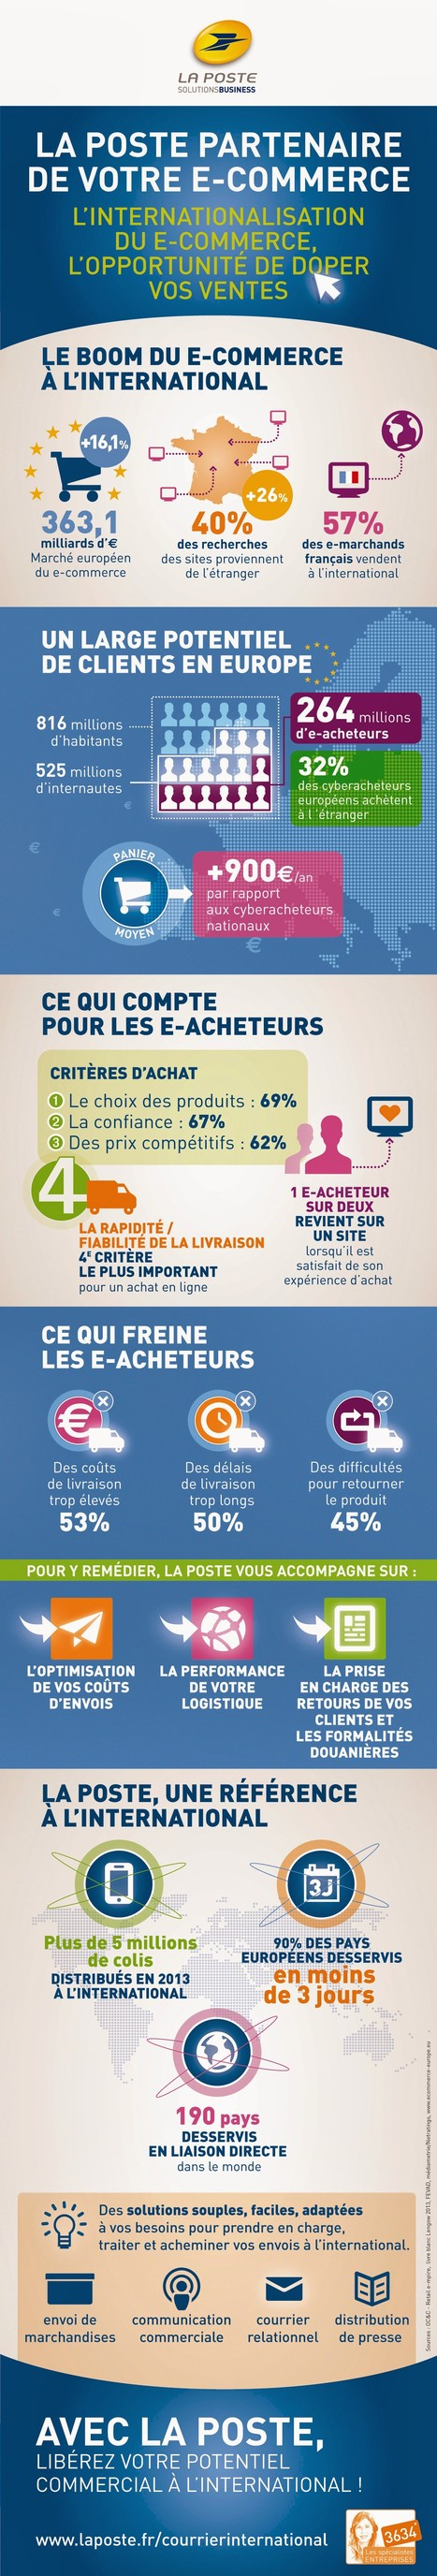 [Infographie] Le boom du e-commerce à l'internationalisation | E commerce | Scoop.it